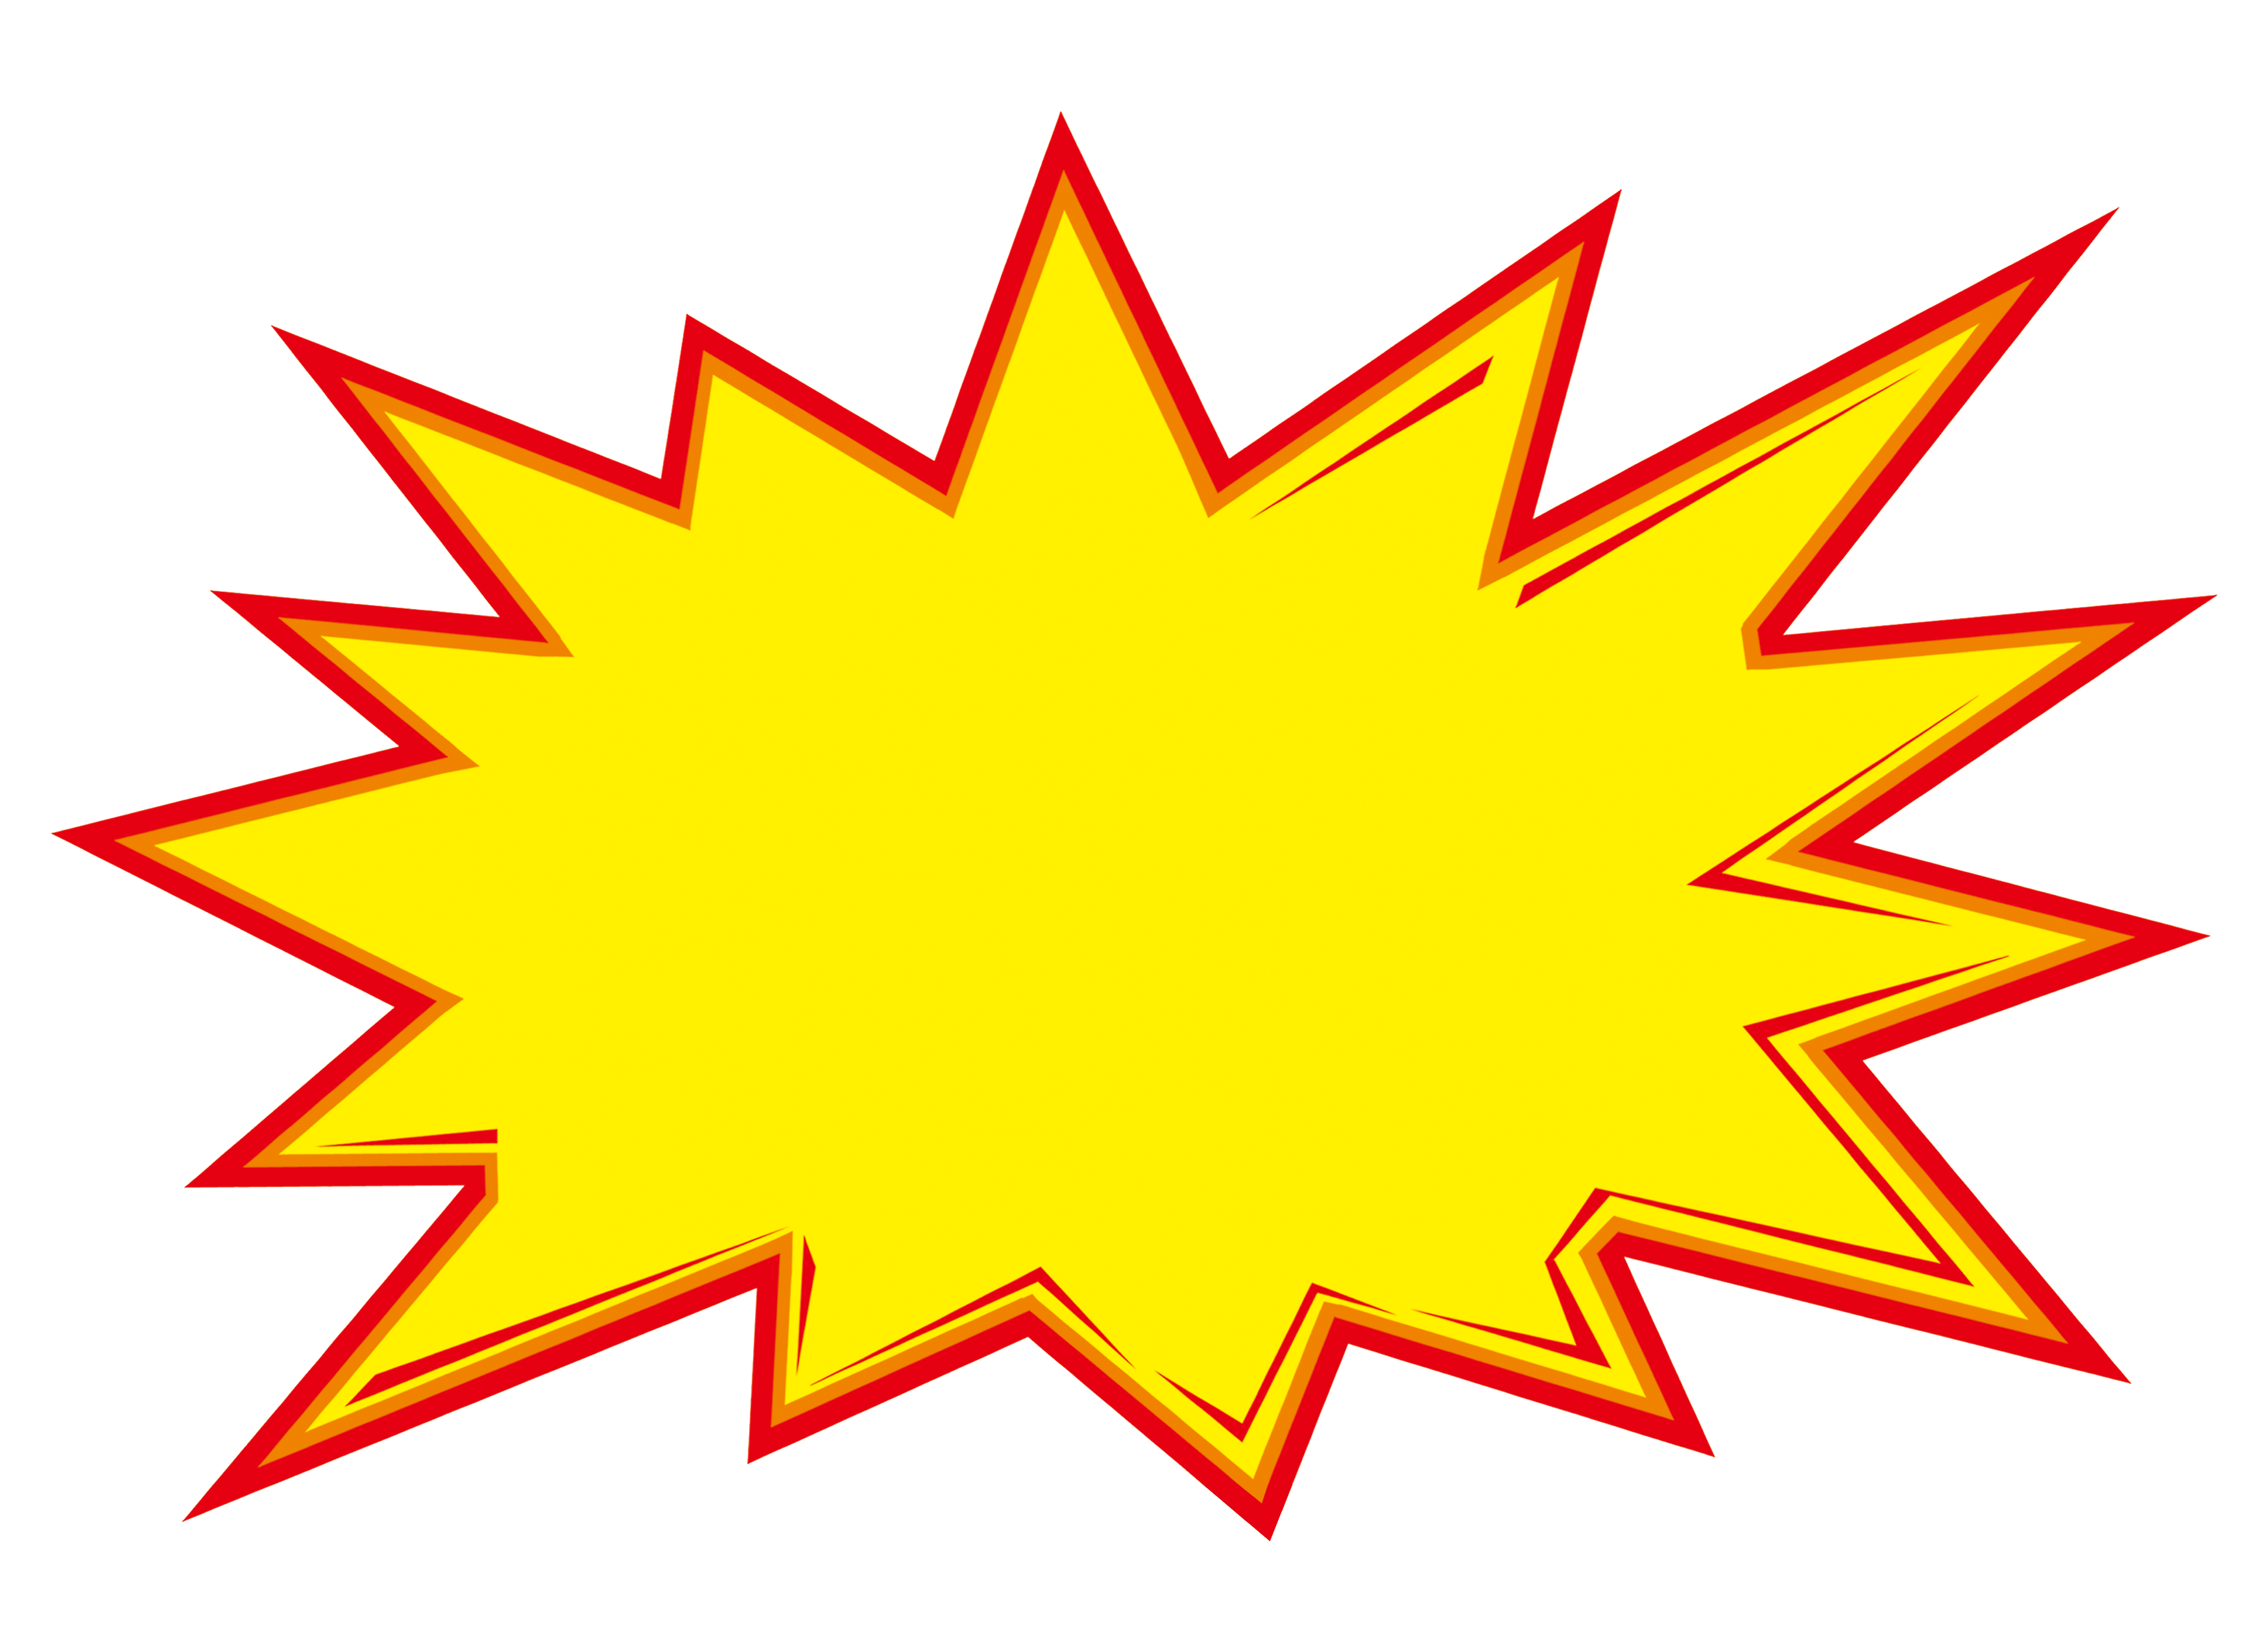 Icon design transprent png. Clipart explosion price tag